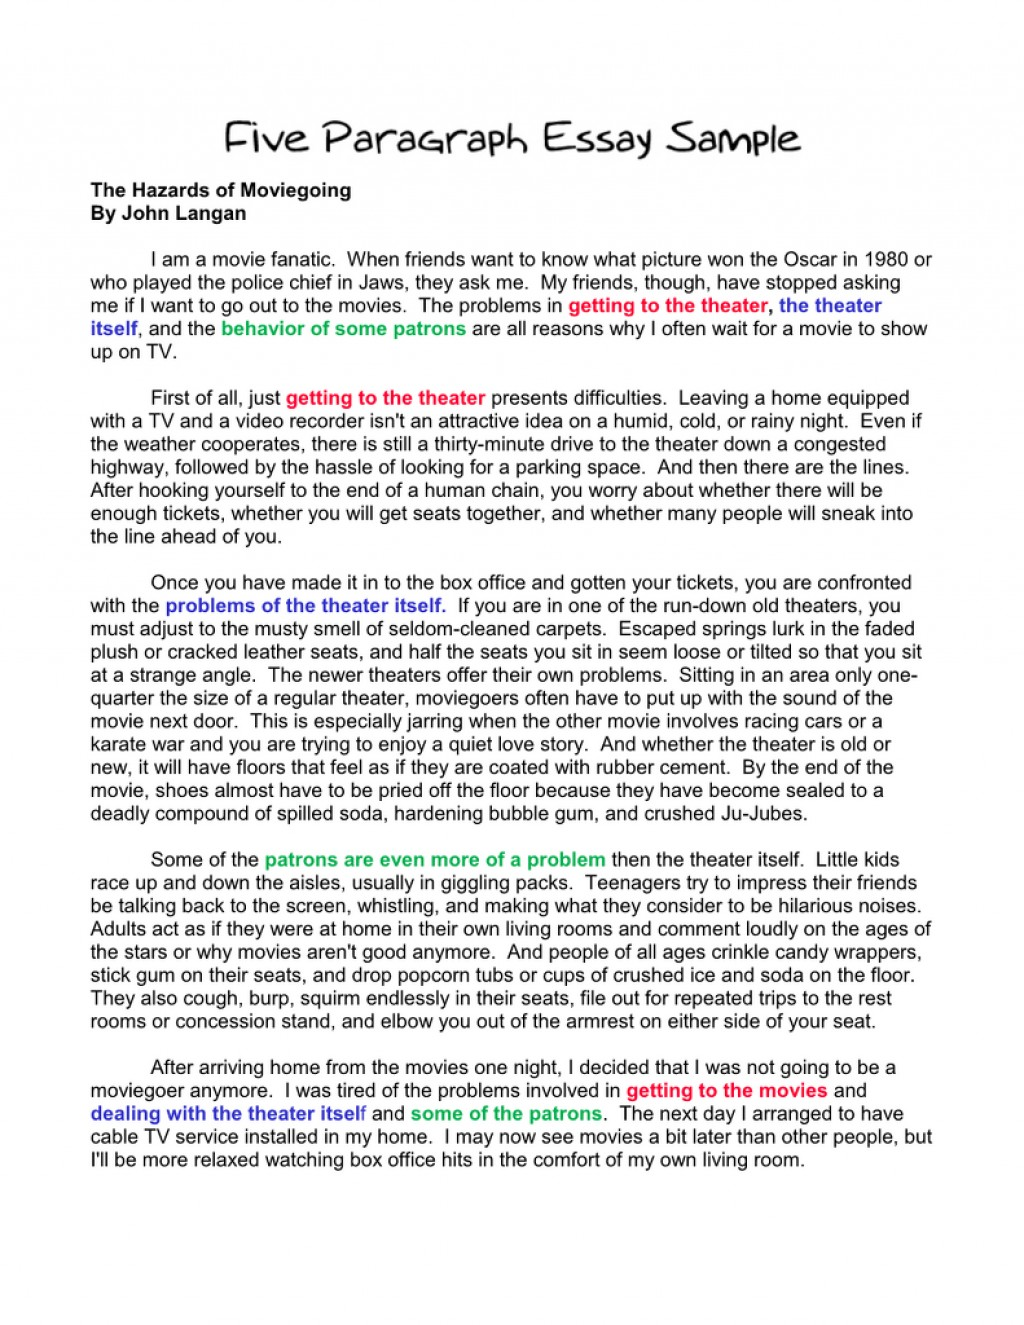 002 Paragraph Essay Sample Example Basic Outline An How To Start Sentence In First Second Write Third Body Conclusion Argumentative Stirring 5 High School Pdf Template Five Large